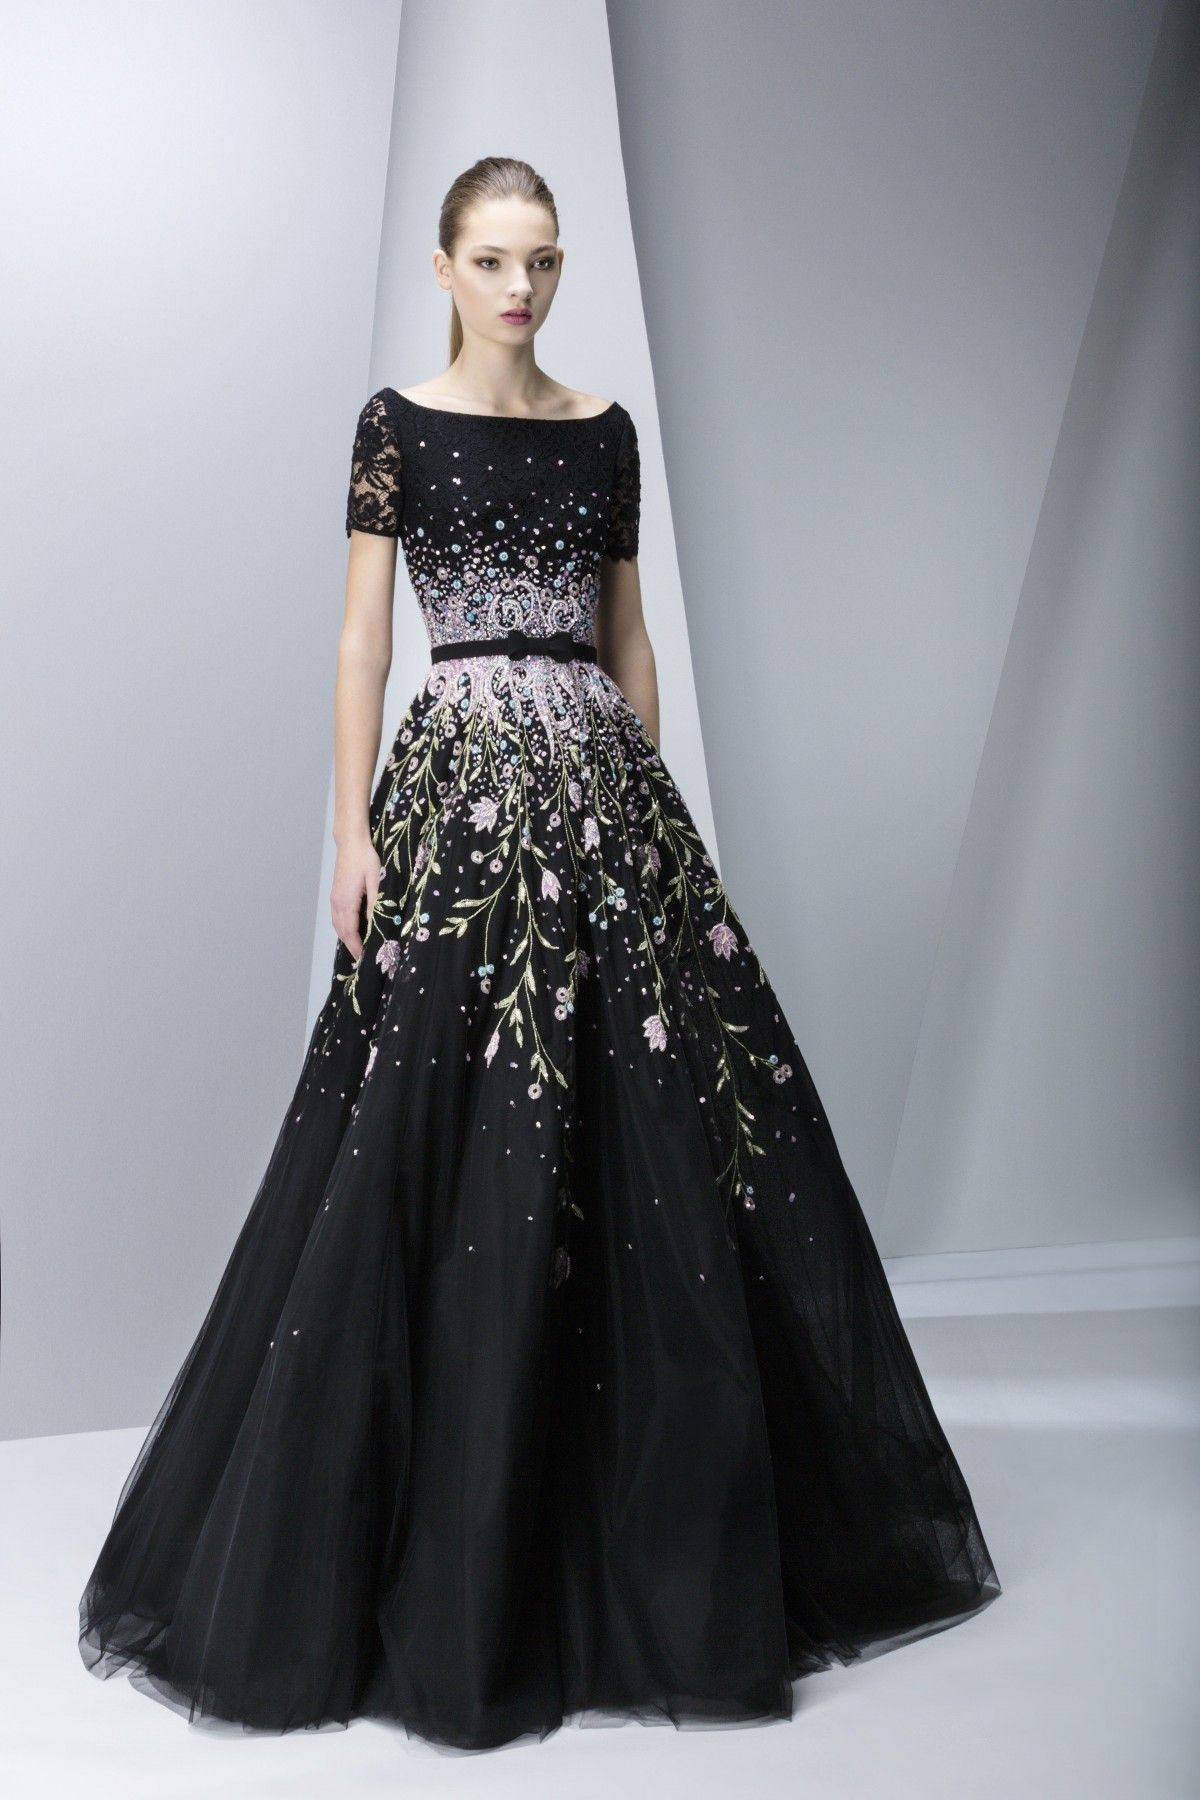 Georges Hobeika | Ready-to-Wear Fall-Winter 15-16 | Look 17 ...